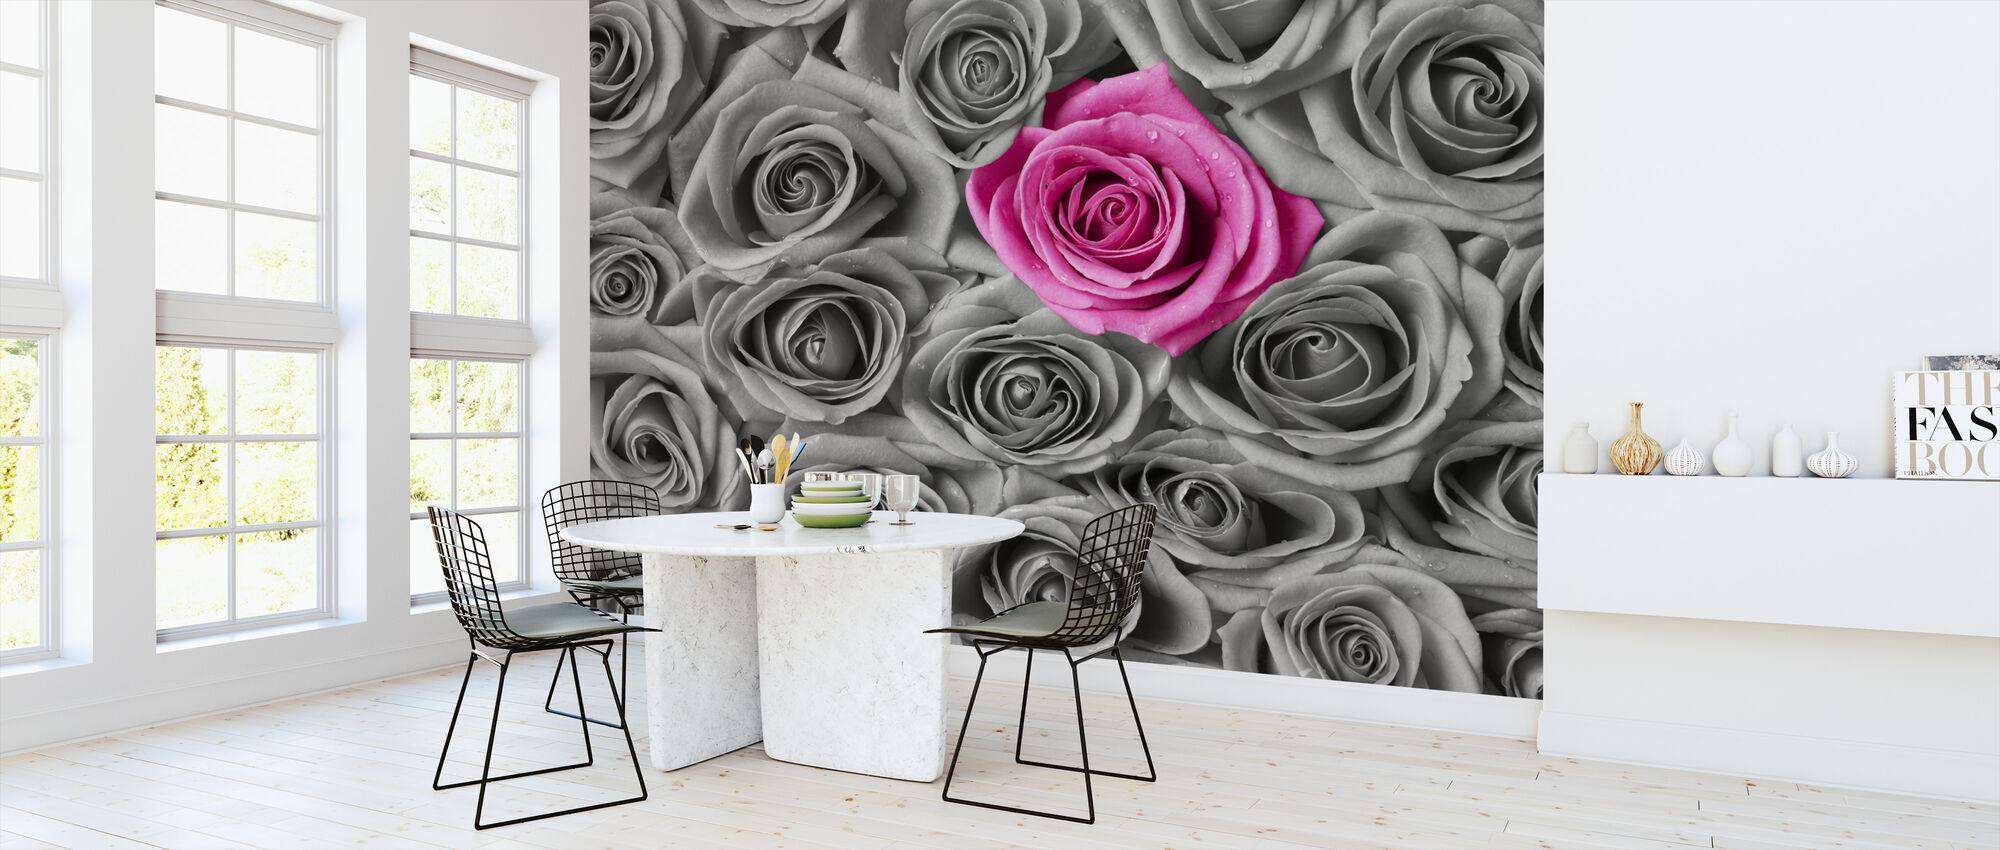 Roses - Pink and Grey - Wallpaper - Kitchen